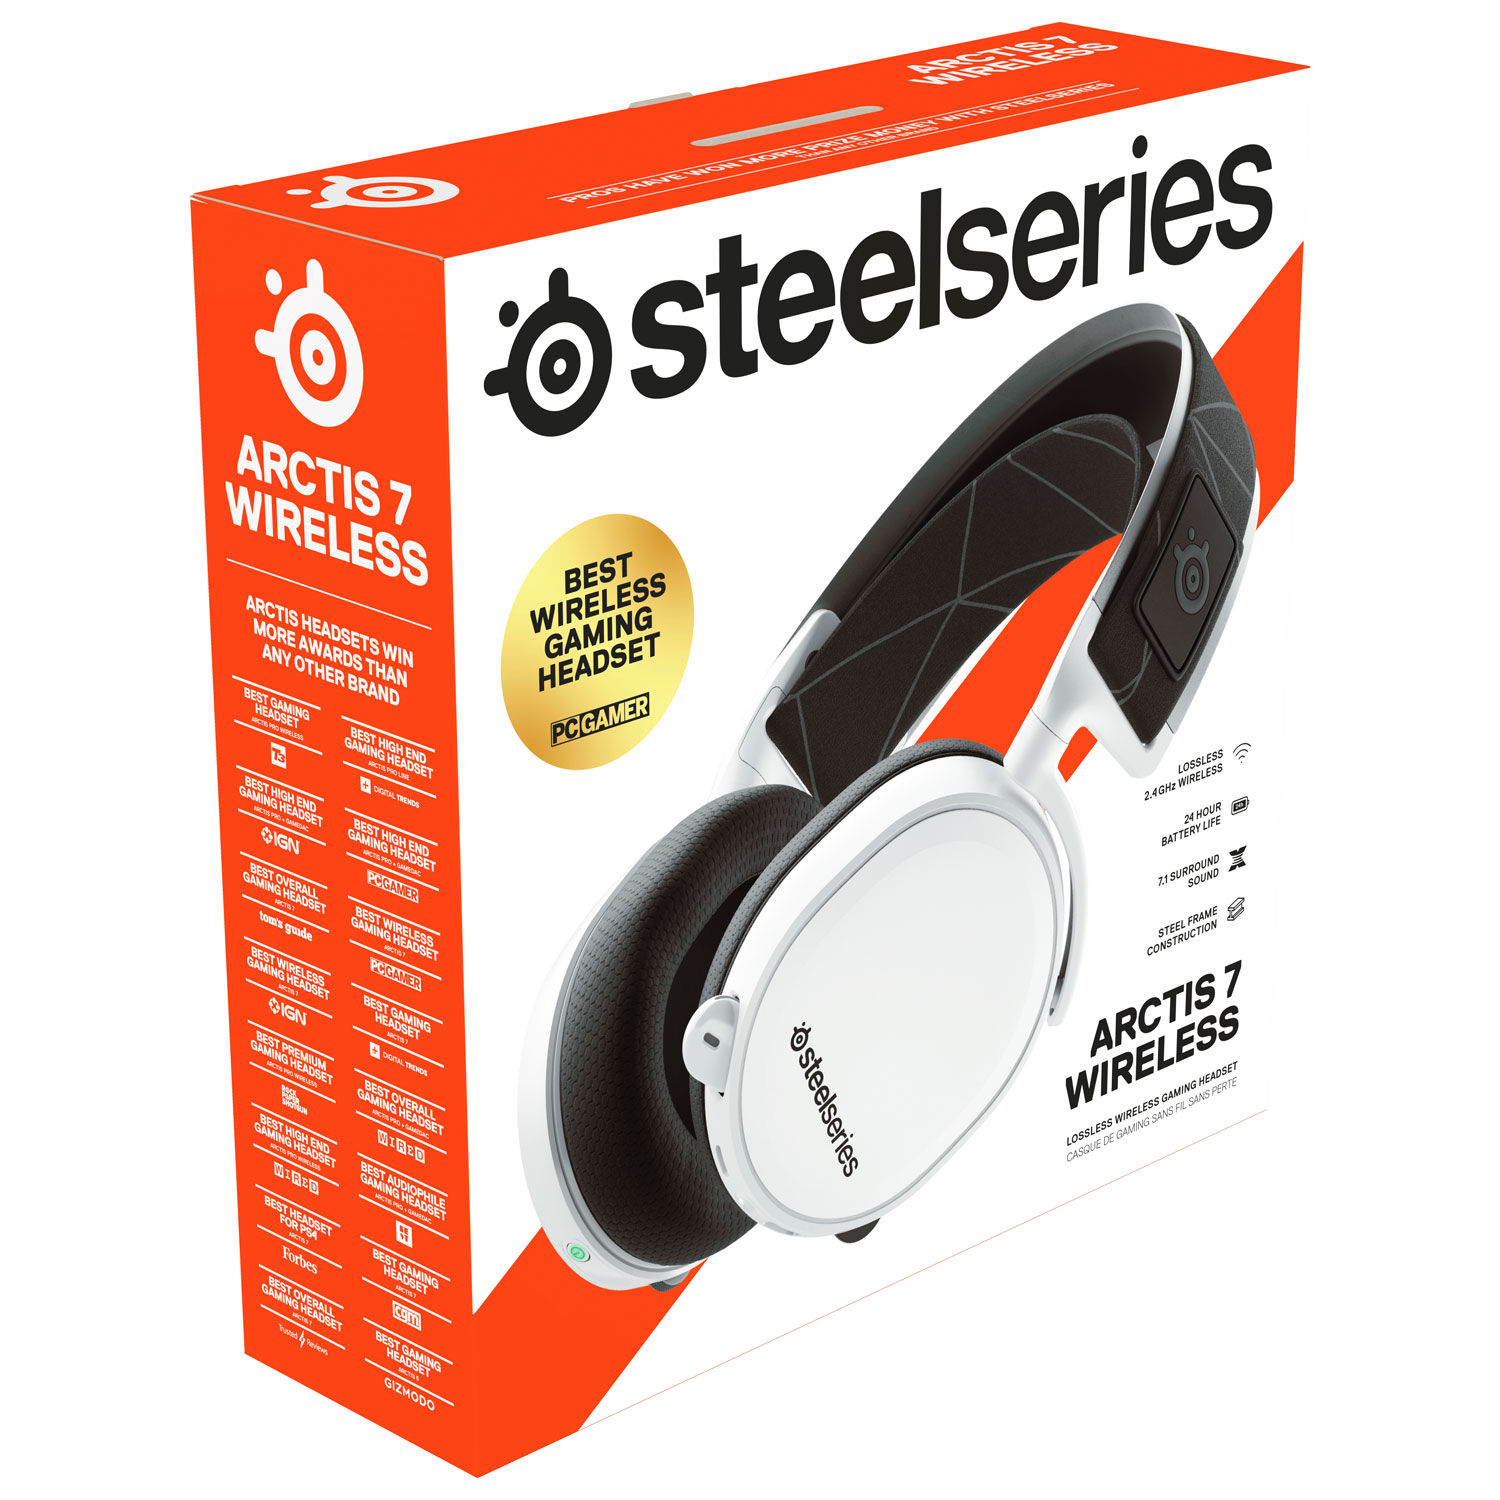 Steelseries Arctis 7 Wireless Gaming Headset With Microphone Black Best Buy Canada